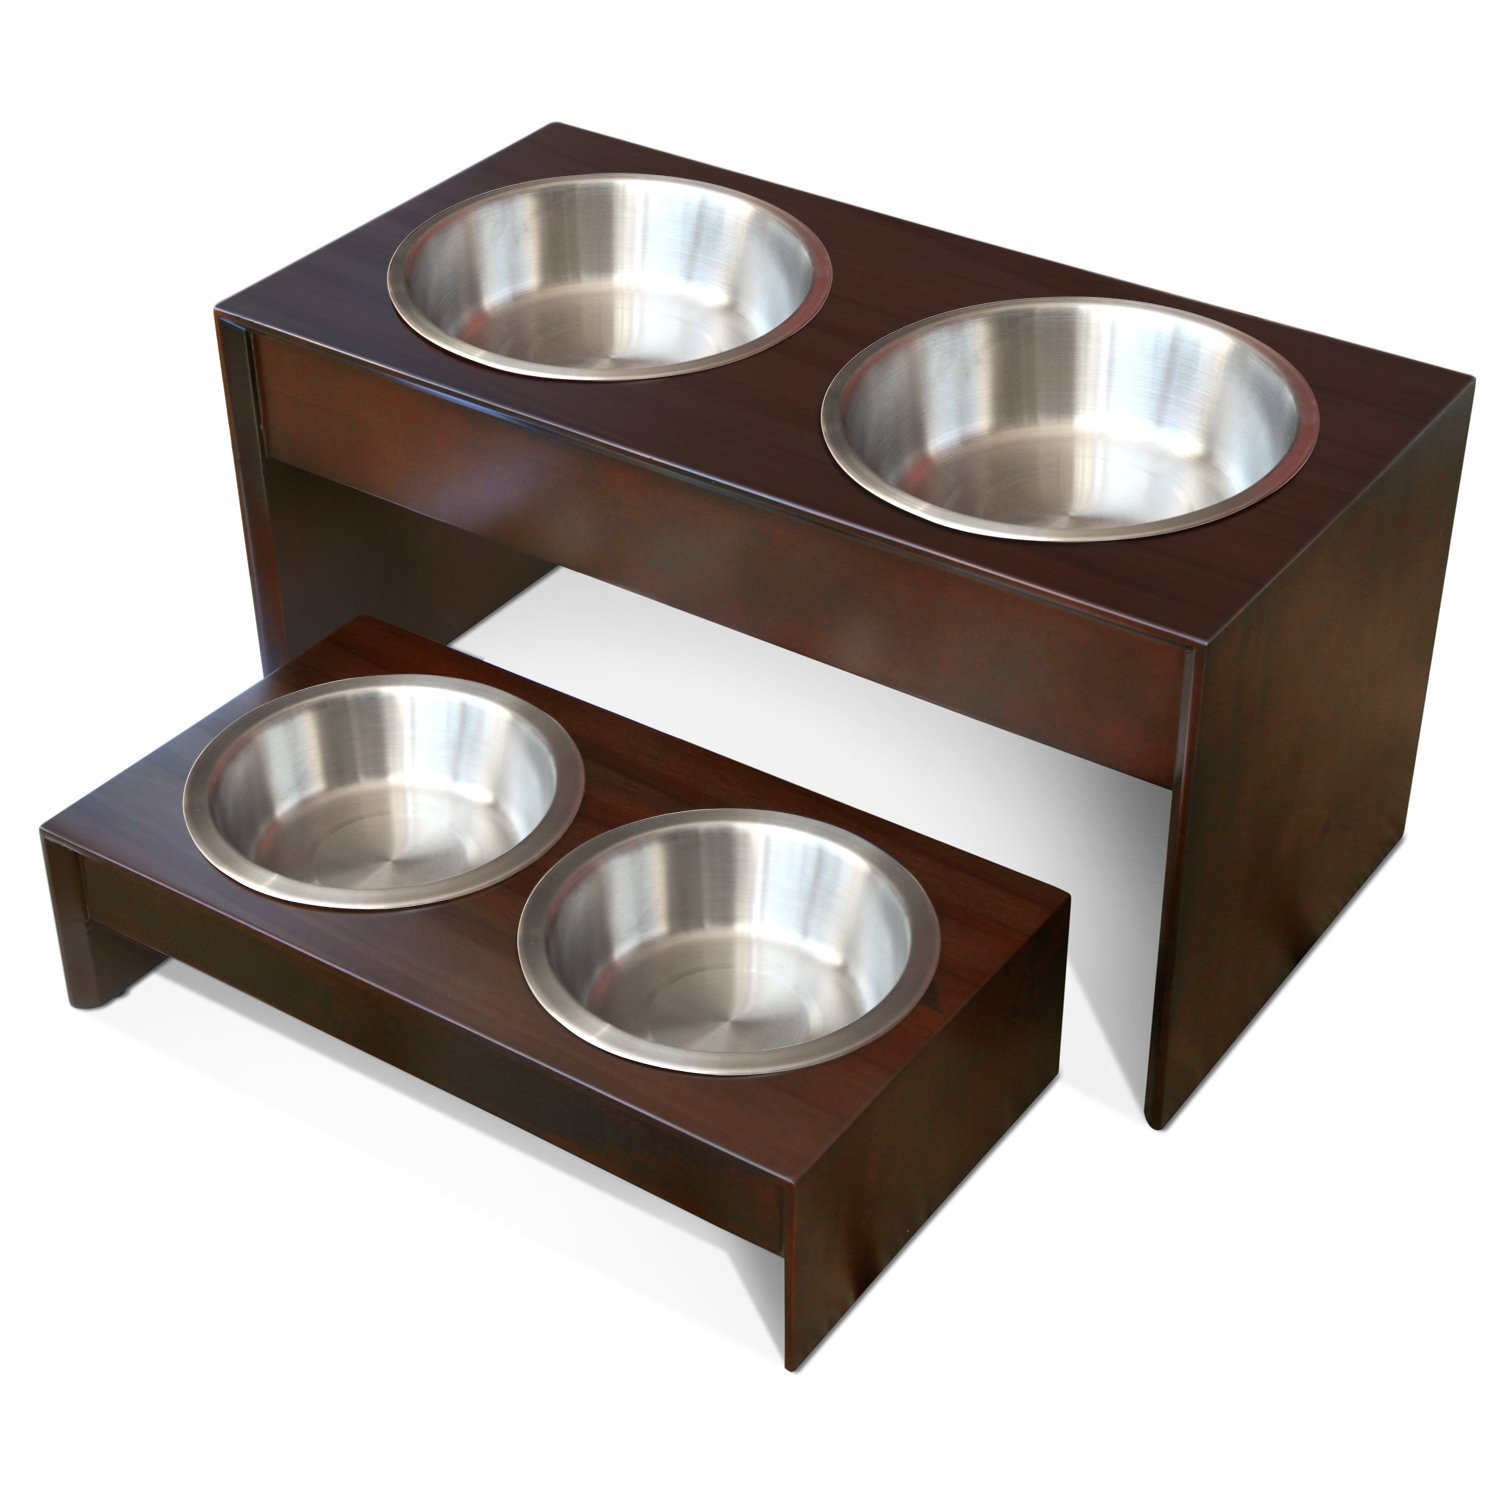 PetFusion Elevated Stainless Steel Pet Feeder in Premium Grade A Solid Wood – Available in 2 Sizes